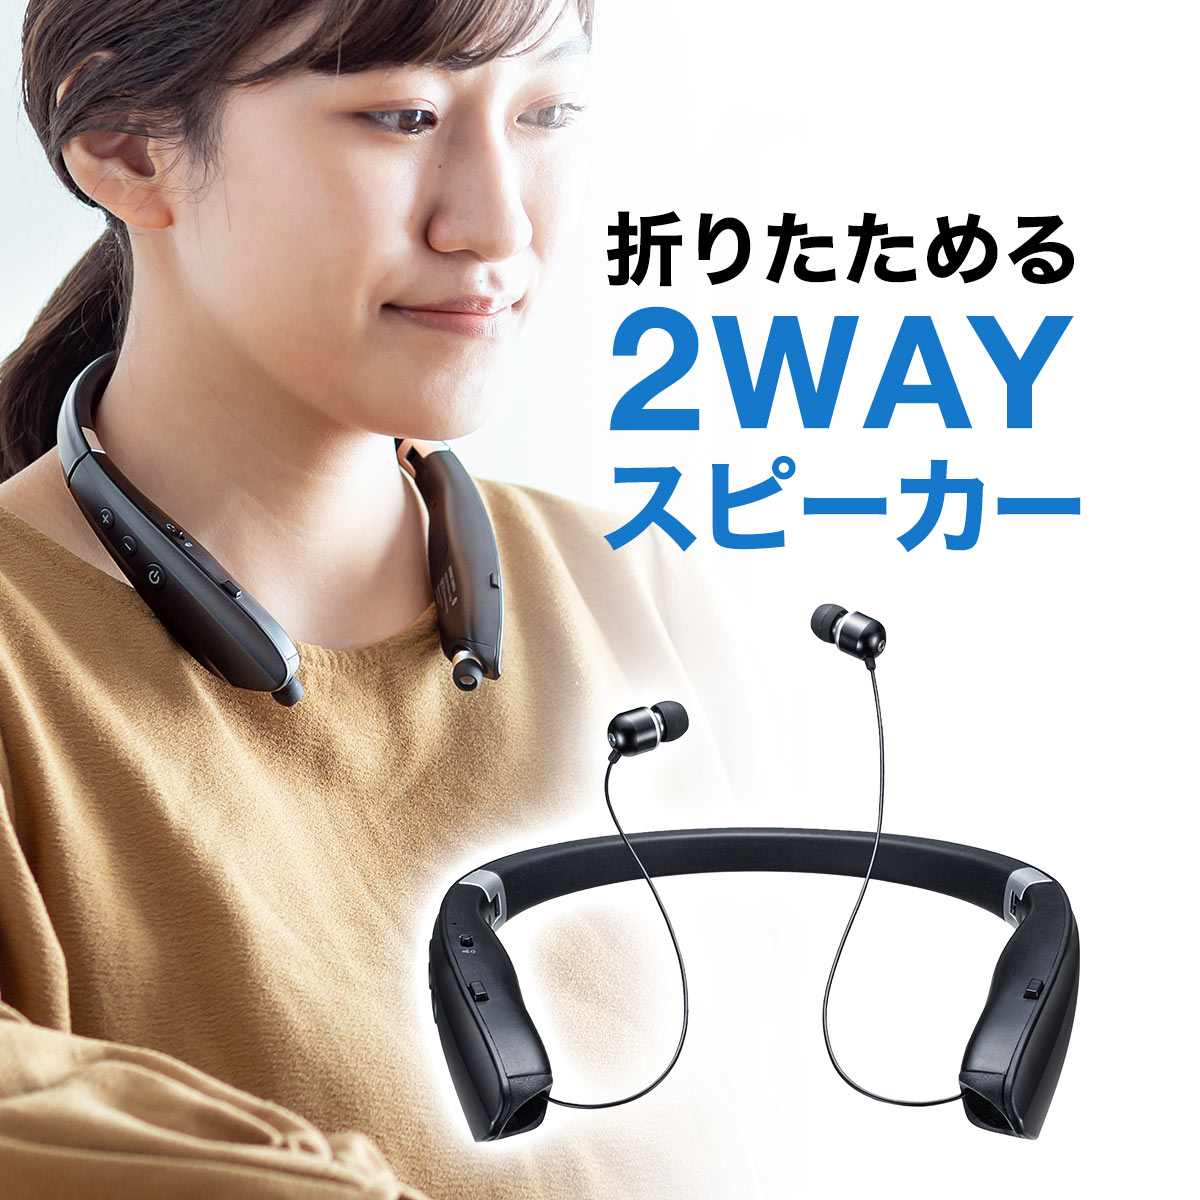 Bluetooth 2WAYスピーカー「400-BTSH017BK」